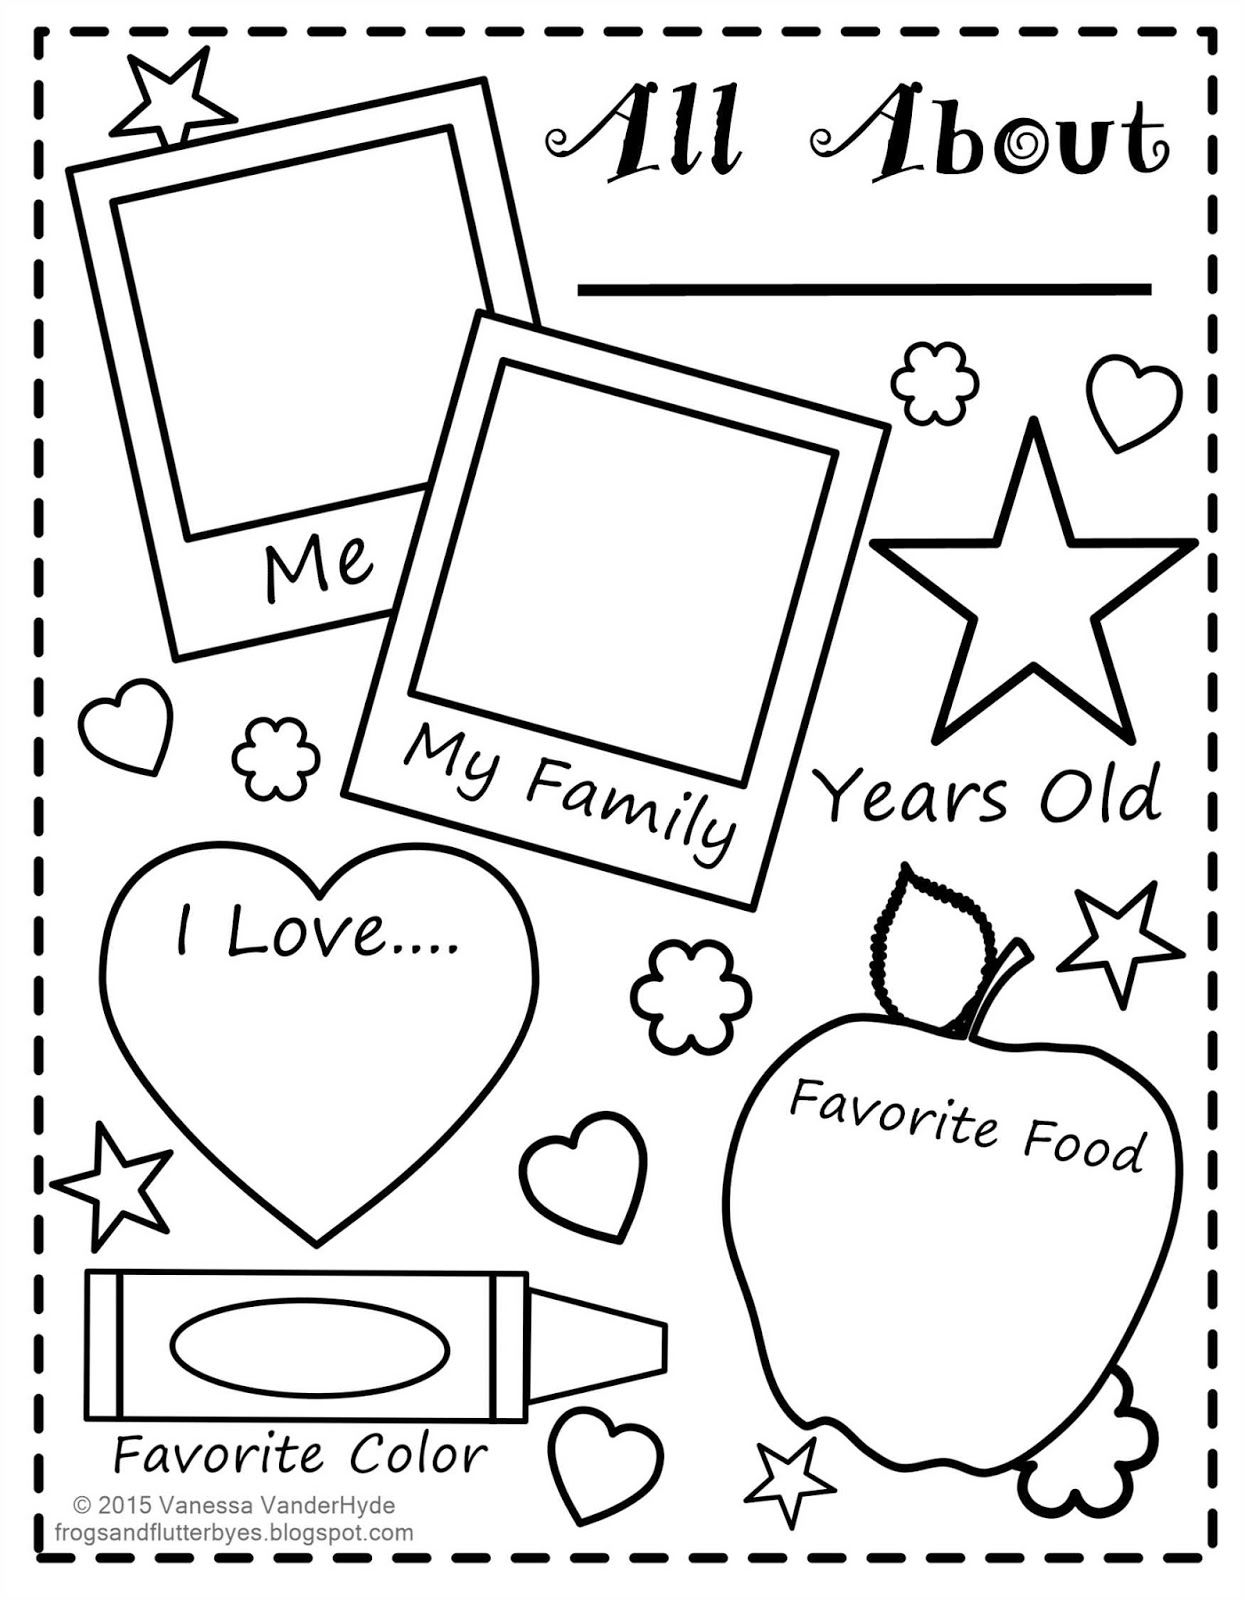 Tactueux image in all about me printable preschool